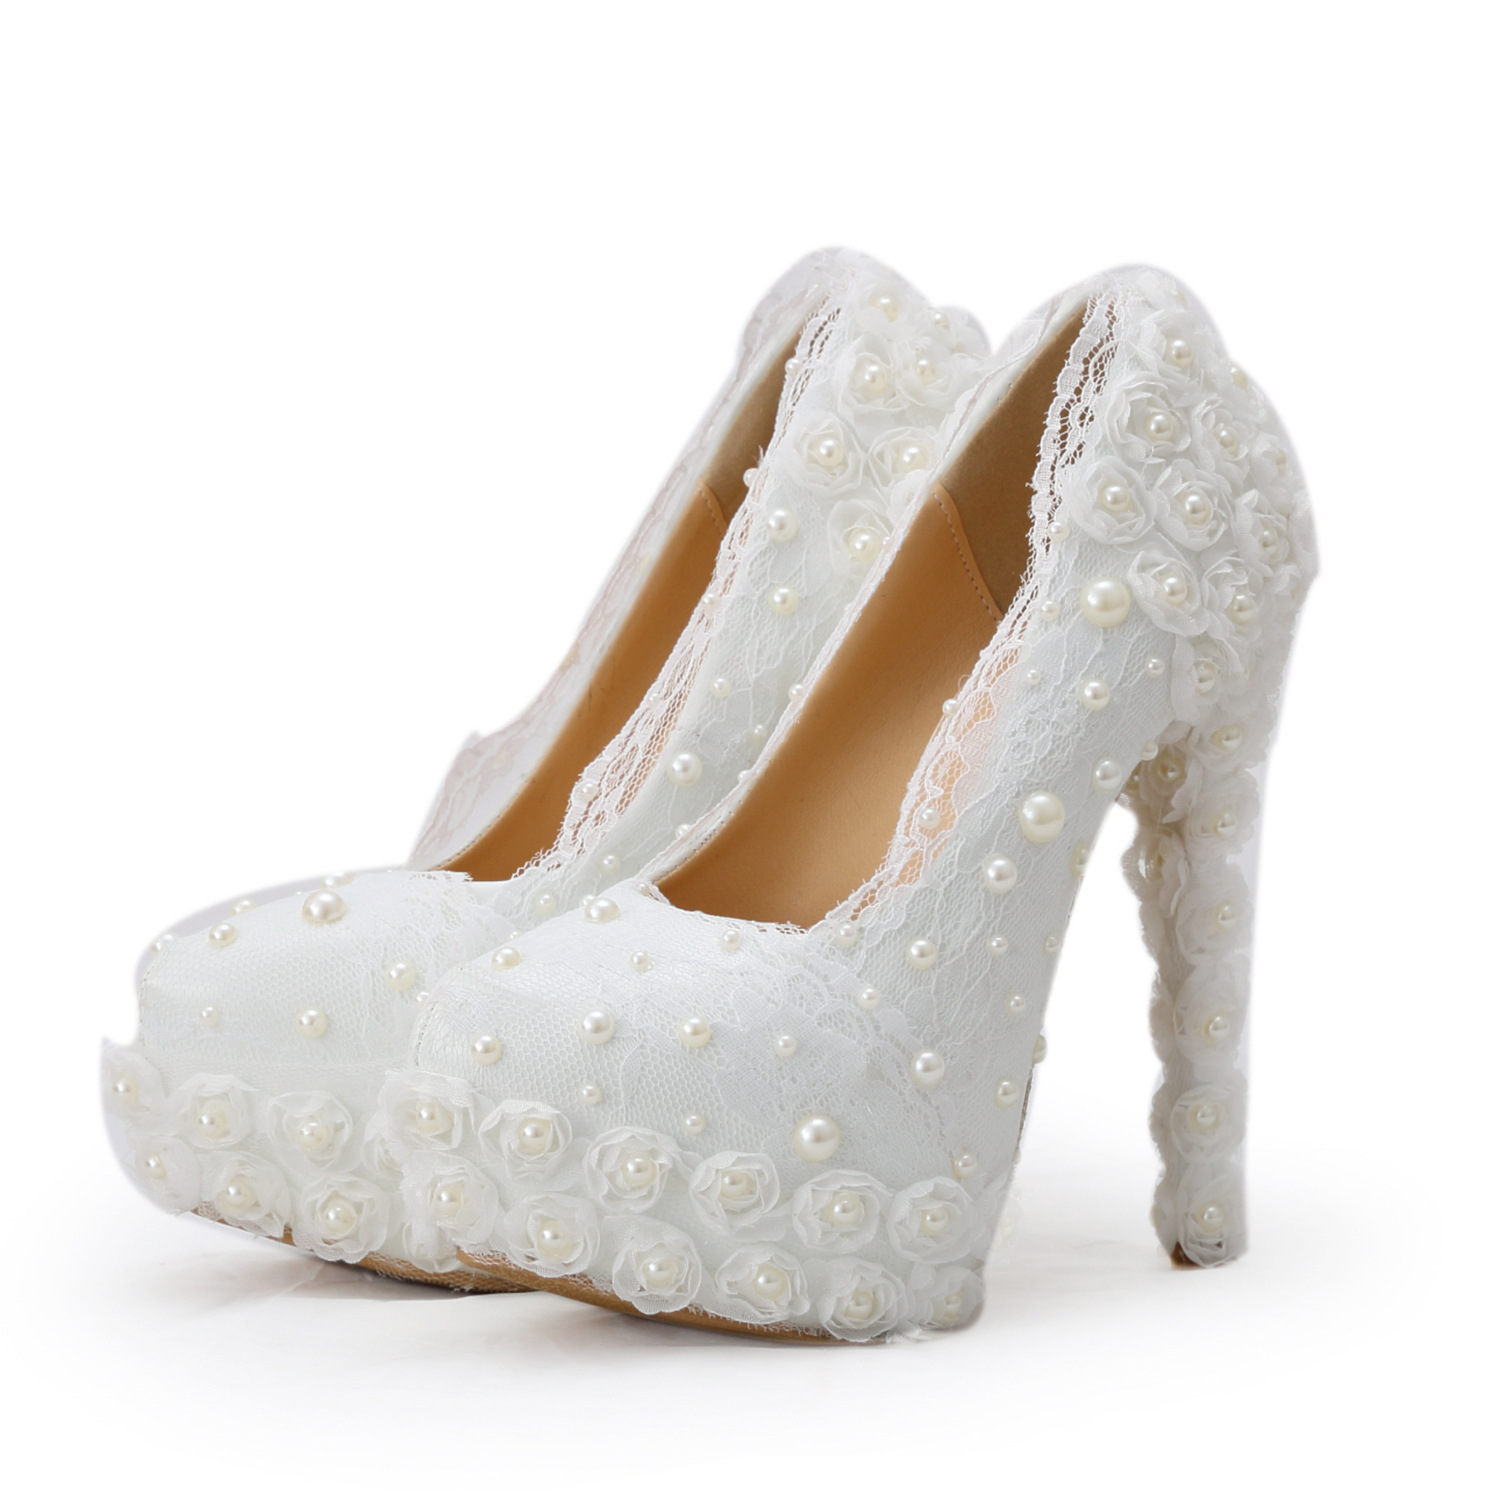 6455c4cdc White Lace Flower Wedding Shoes Pearl Beaded Super High Heel with Platform  Women Pumps Round Toe for Party Bridesmaid Bridal